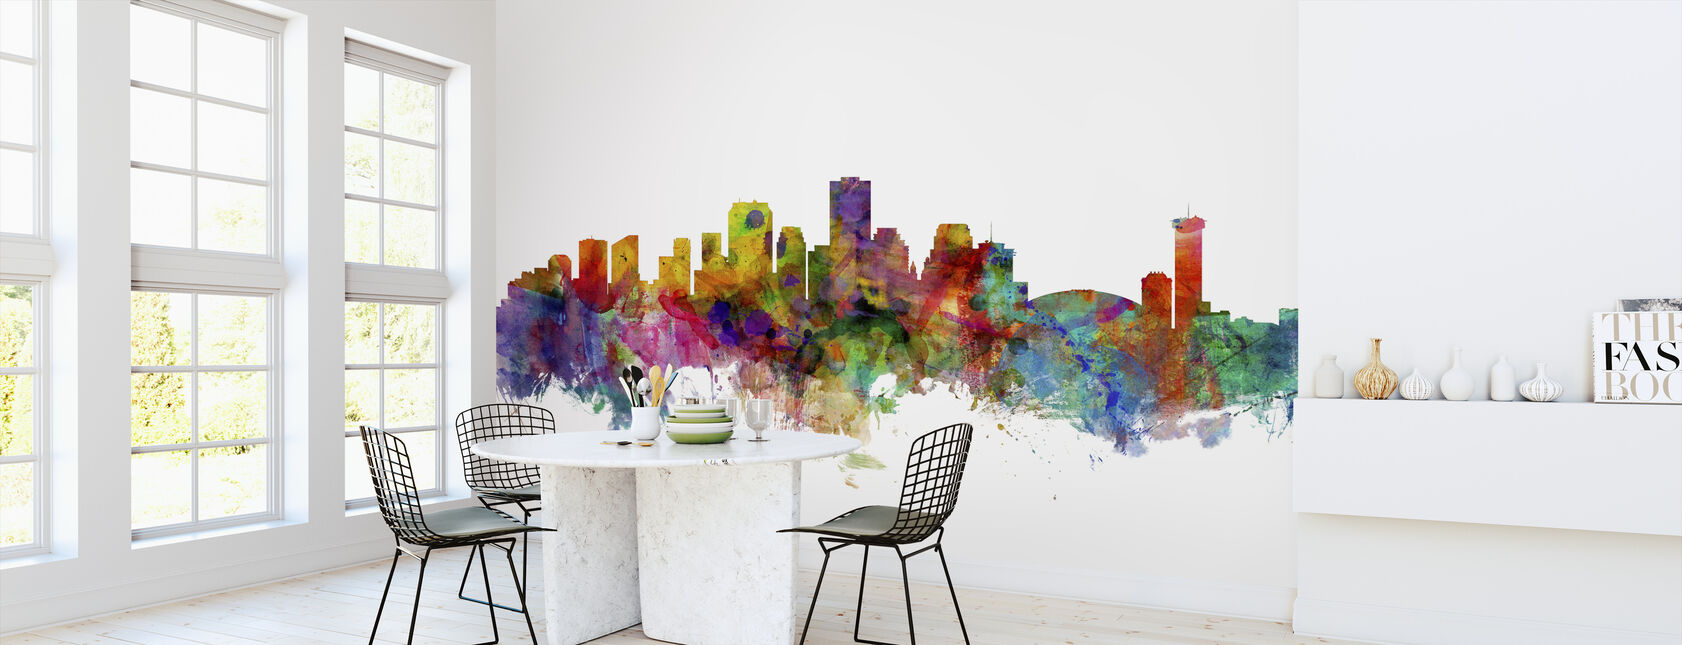 New Orleans Louisiana Skyline - Wallpaper - Kitchen